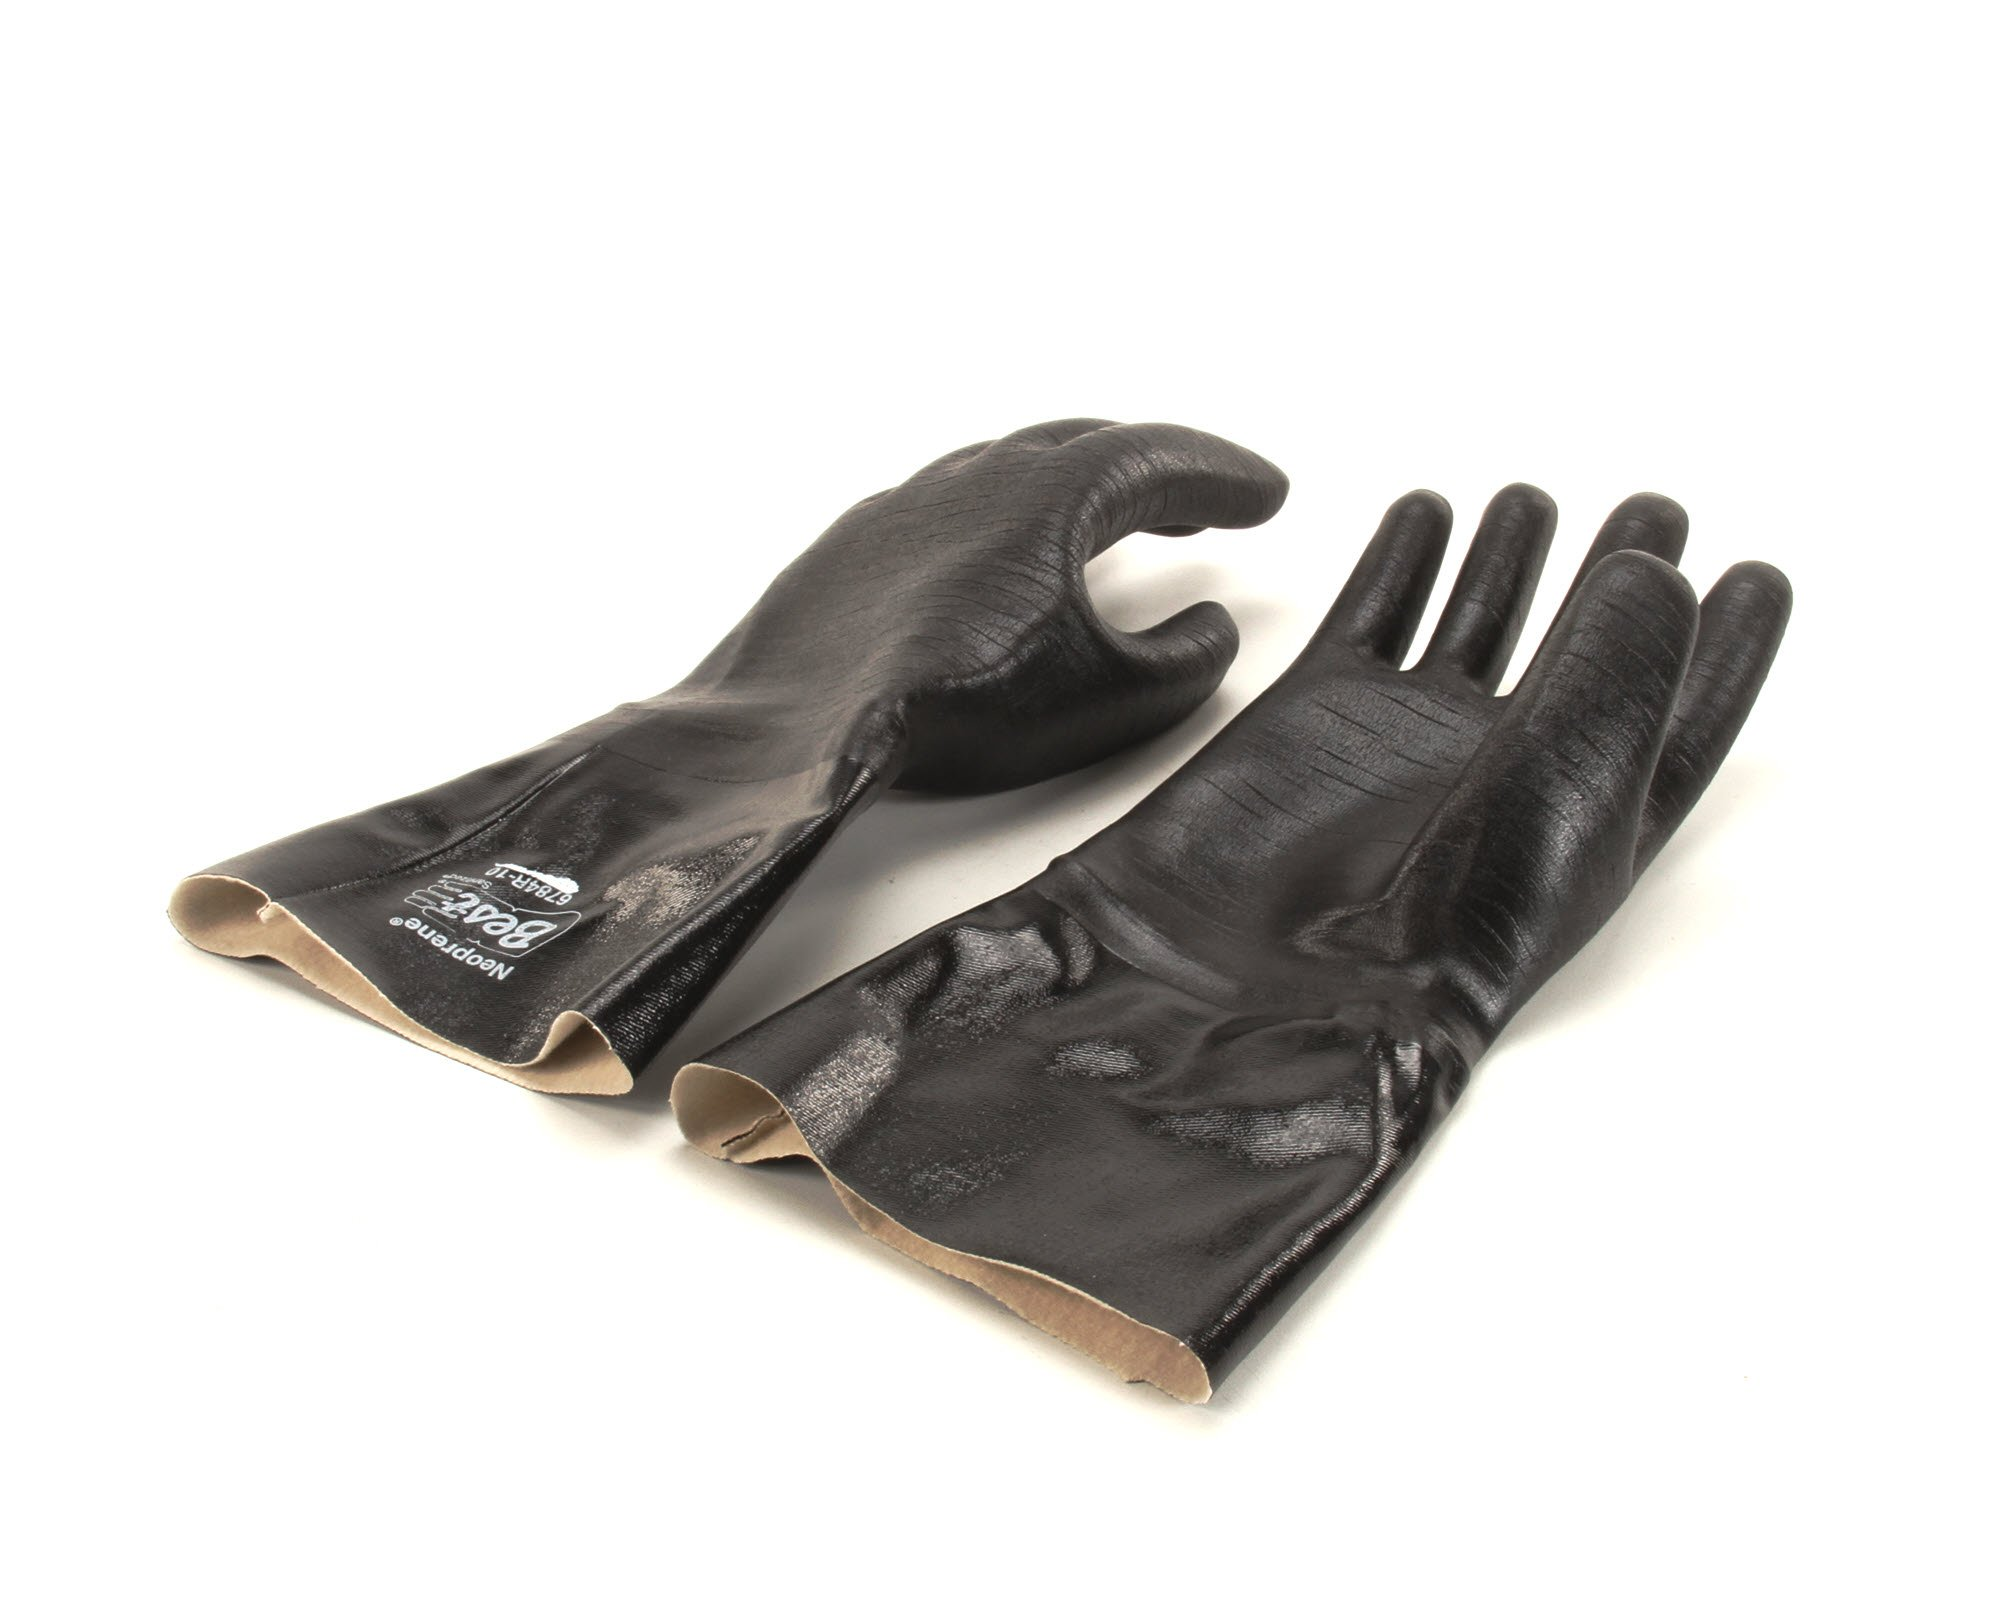 Frymaster 803-0293 Pair of Hot Oil Neoprene Gloves